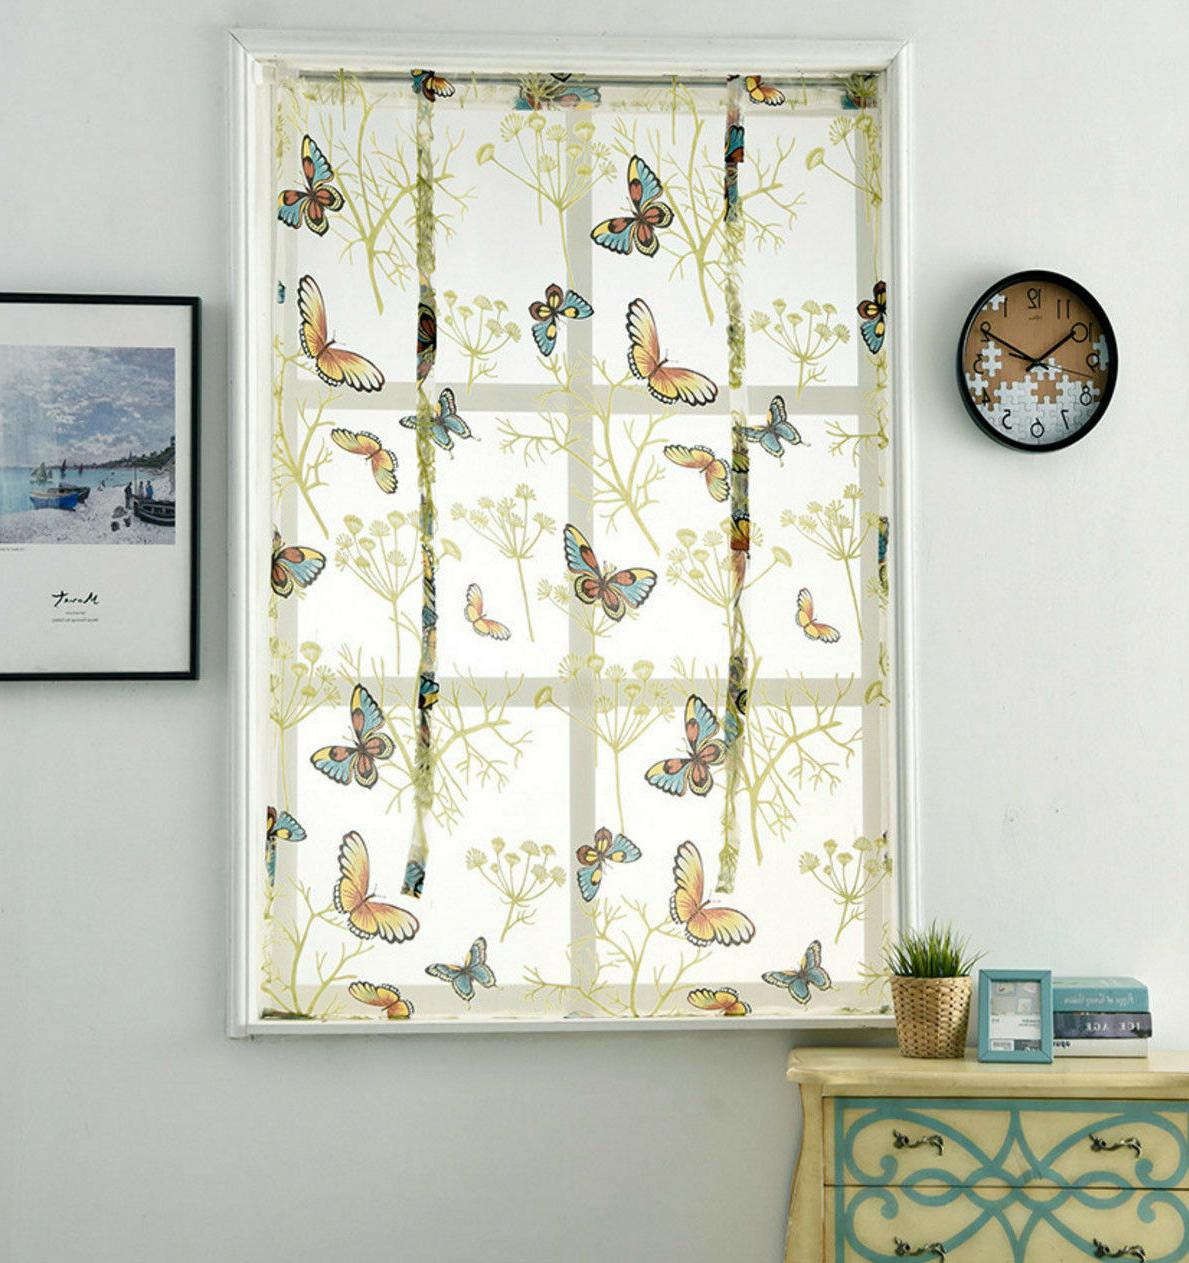 Balloon Curtain Roll Sheer Offset Kitchen Curtain with Ribbon Panel